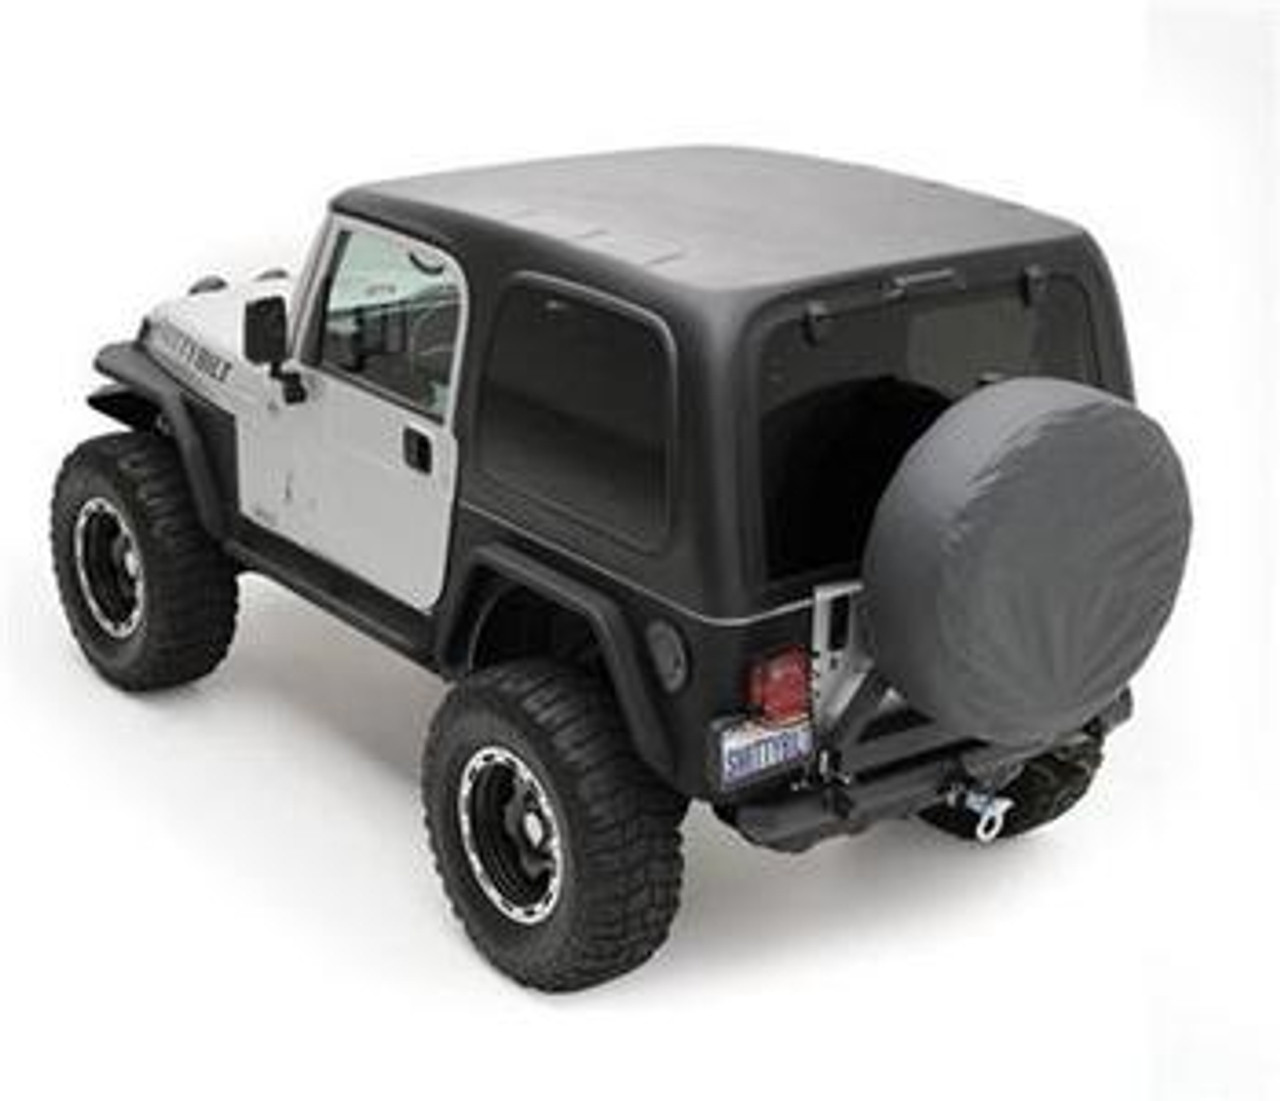 Hardtops and Accessories